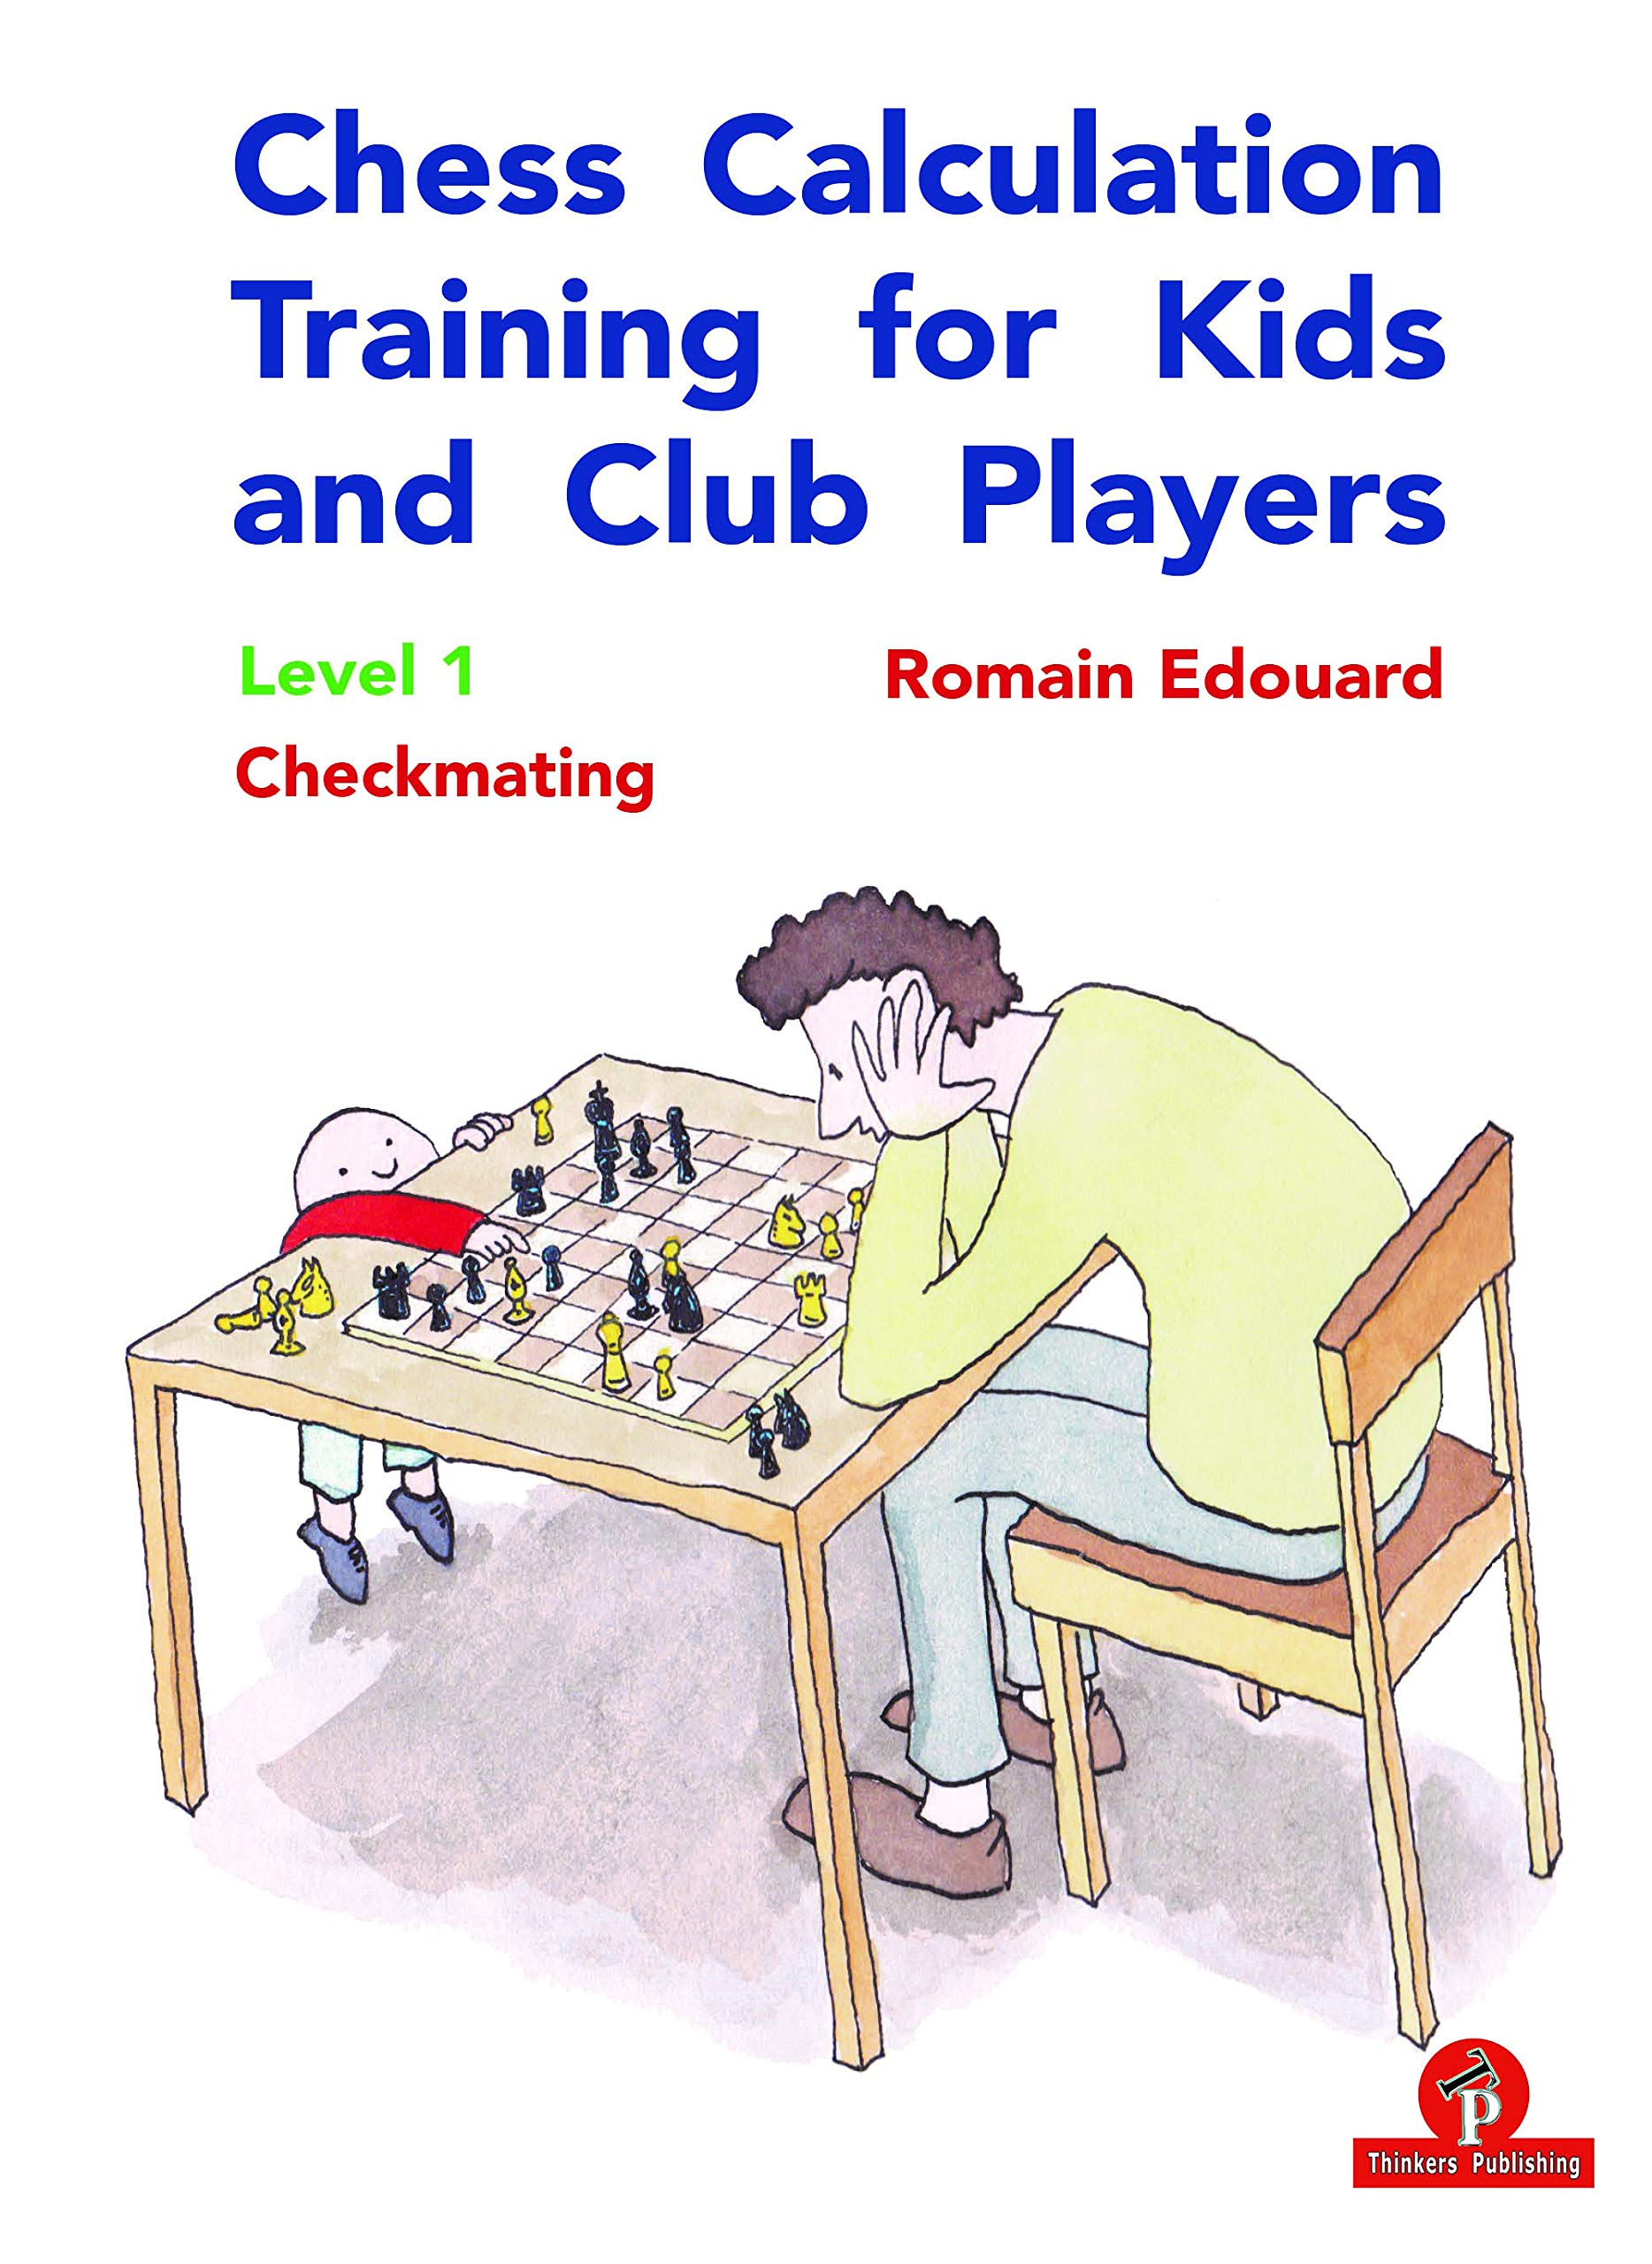 Chess Calculation Training for Kids and Club Players : Level 1 : Checkmating